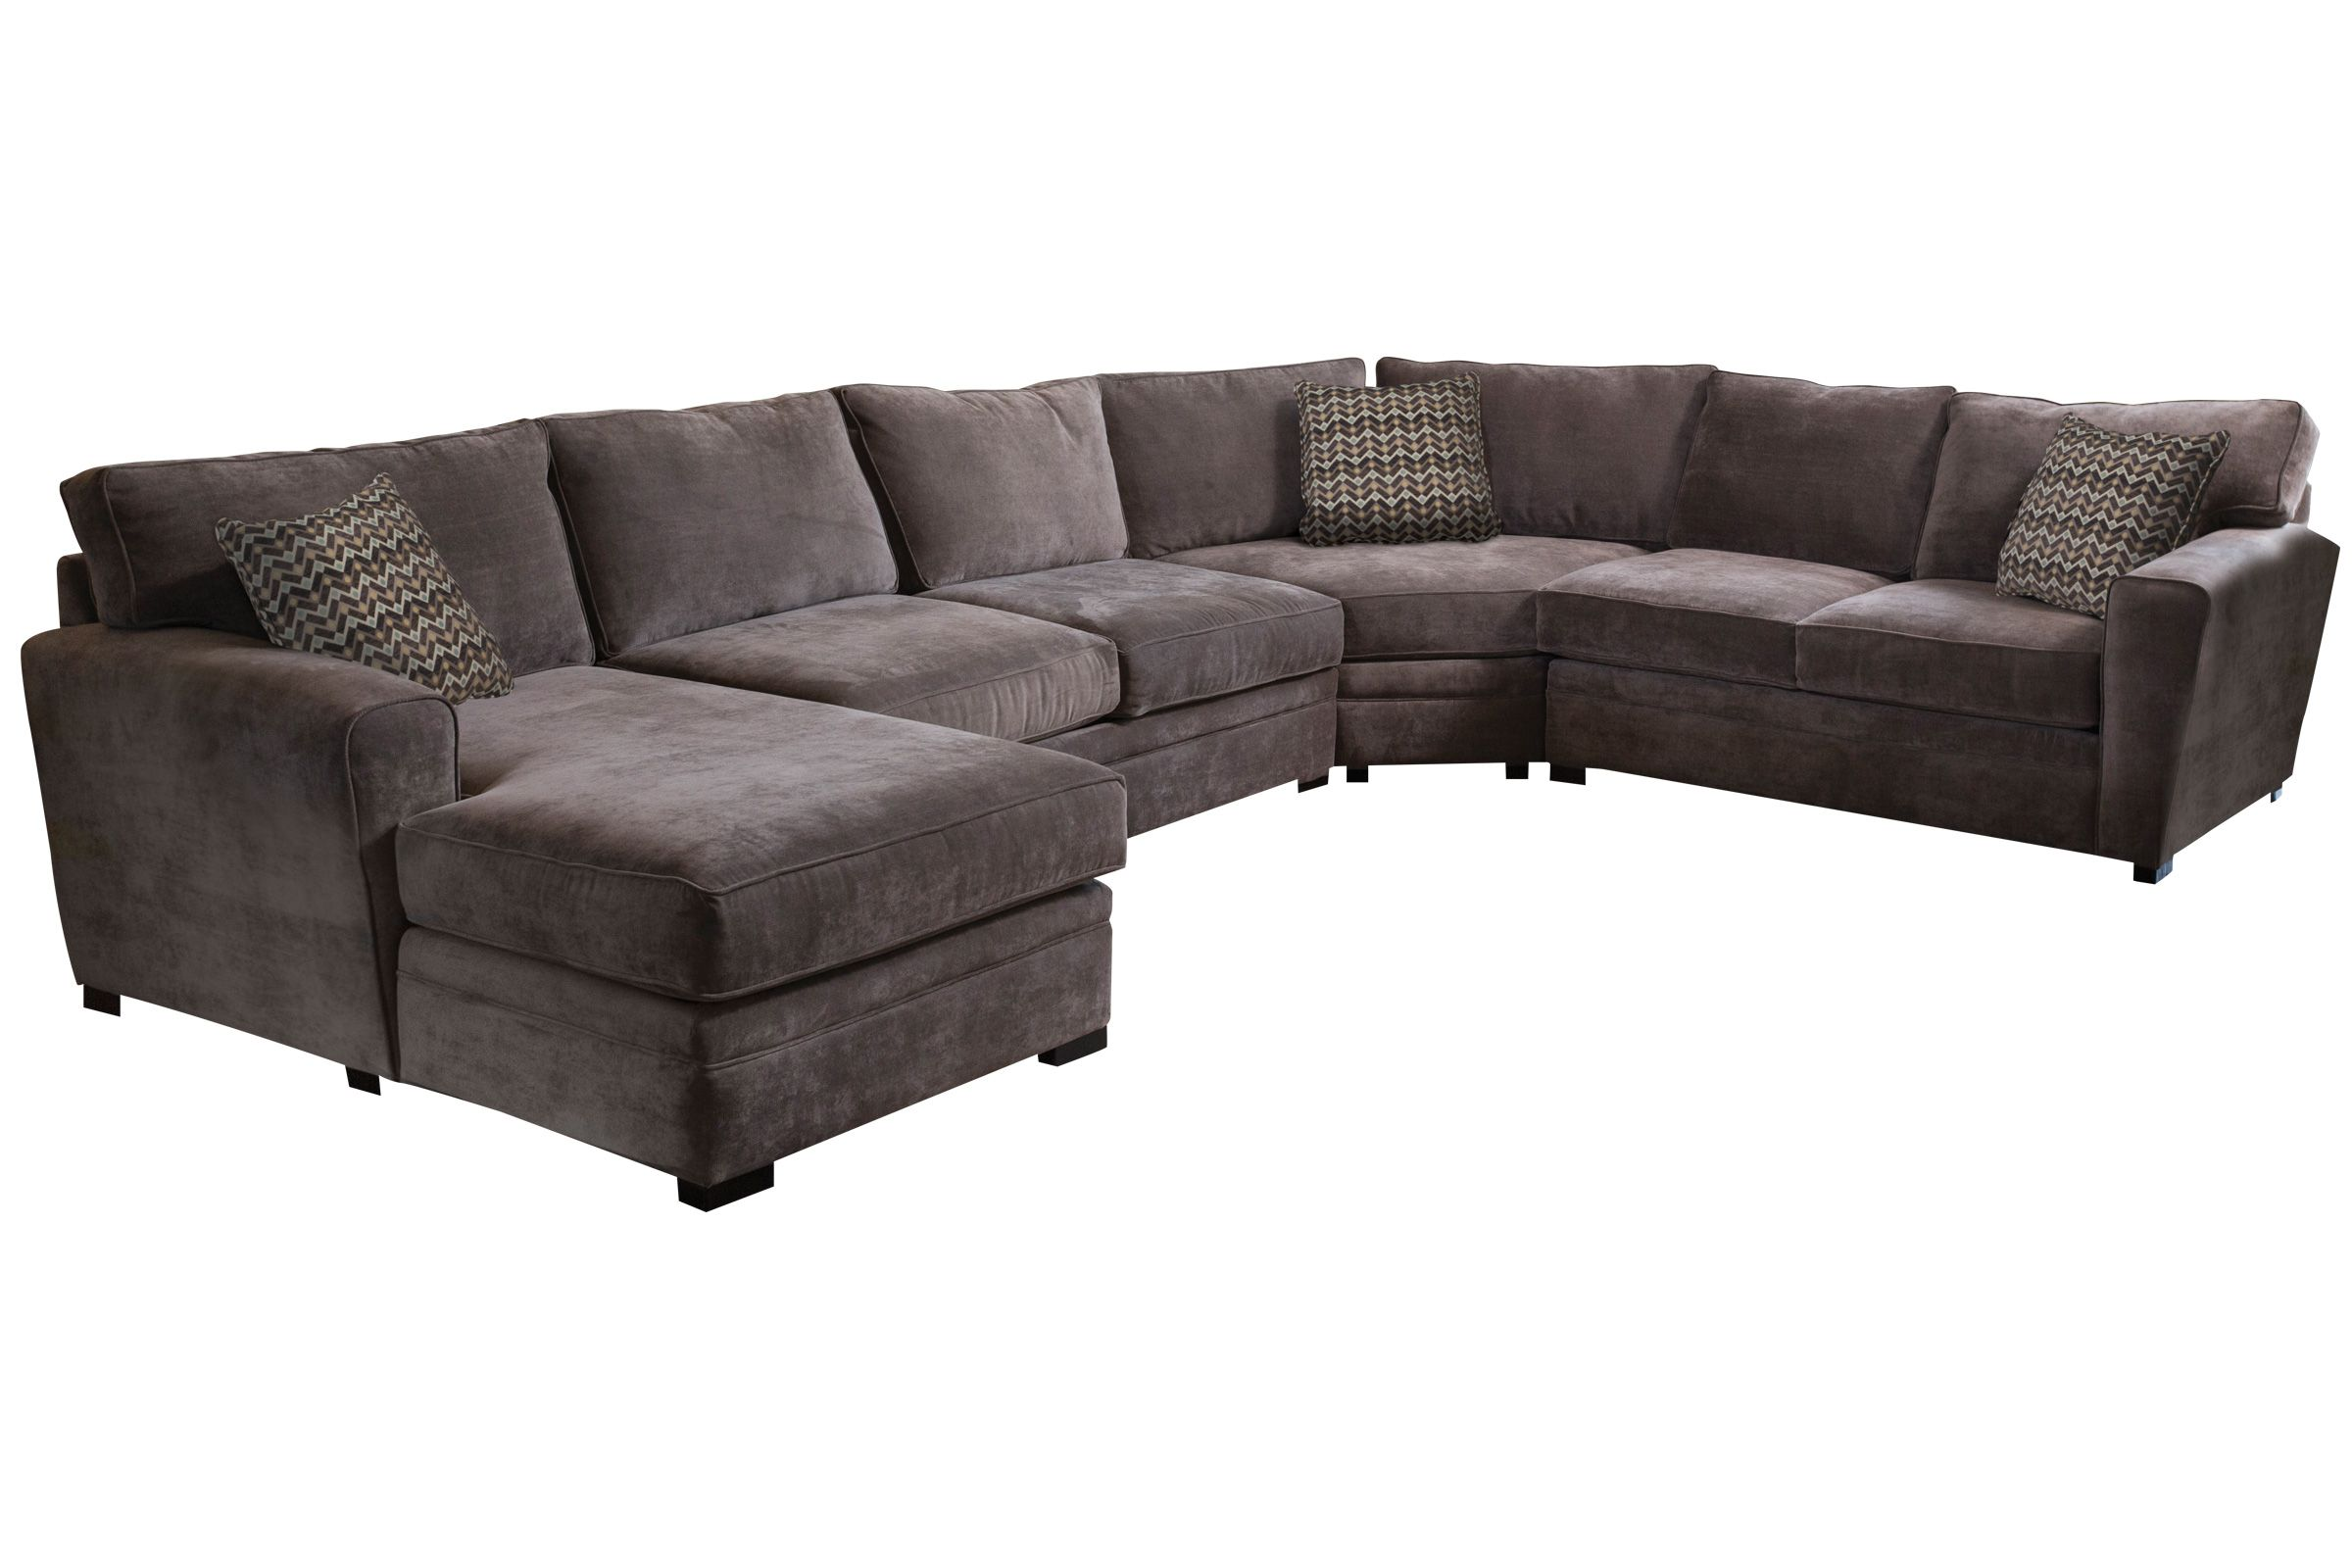 Fresh vista chaise sectional sofa sectional sofas for Vista chaise sectional sofa